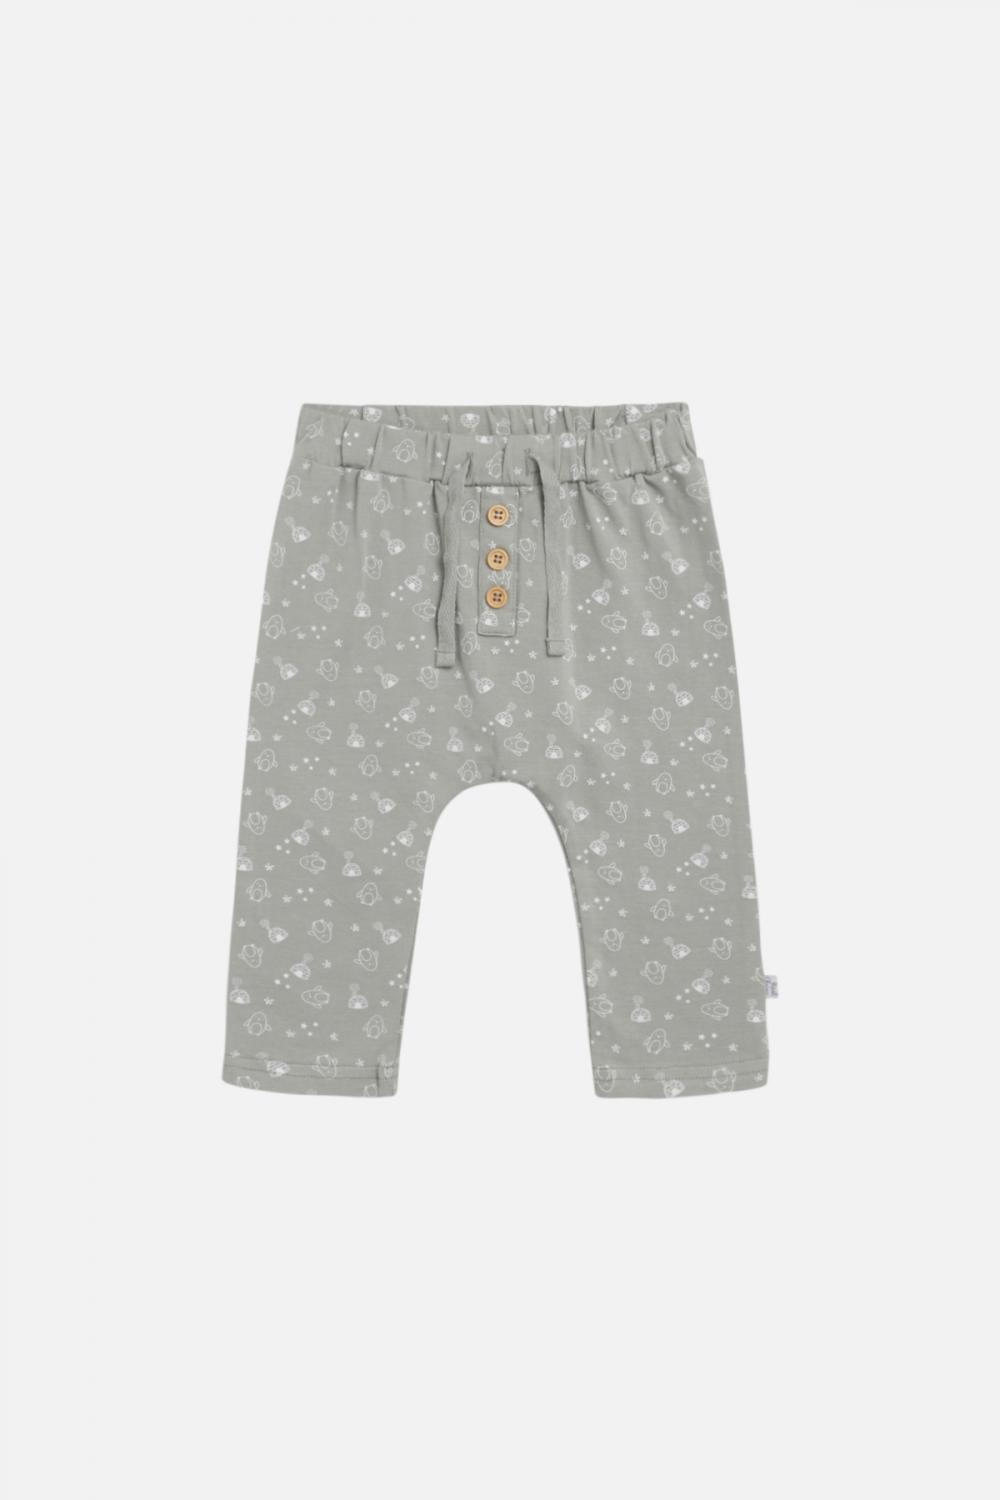 HUST&CLAIRE PANTS 39139059 SEAGRASS